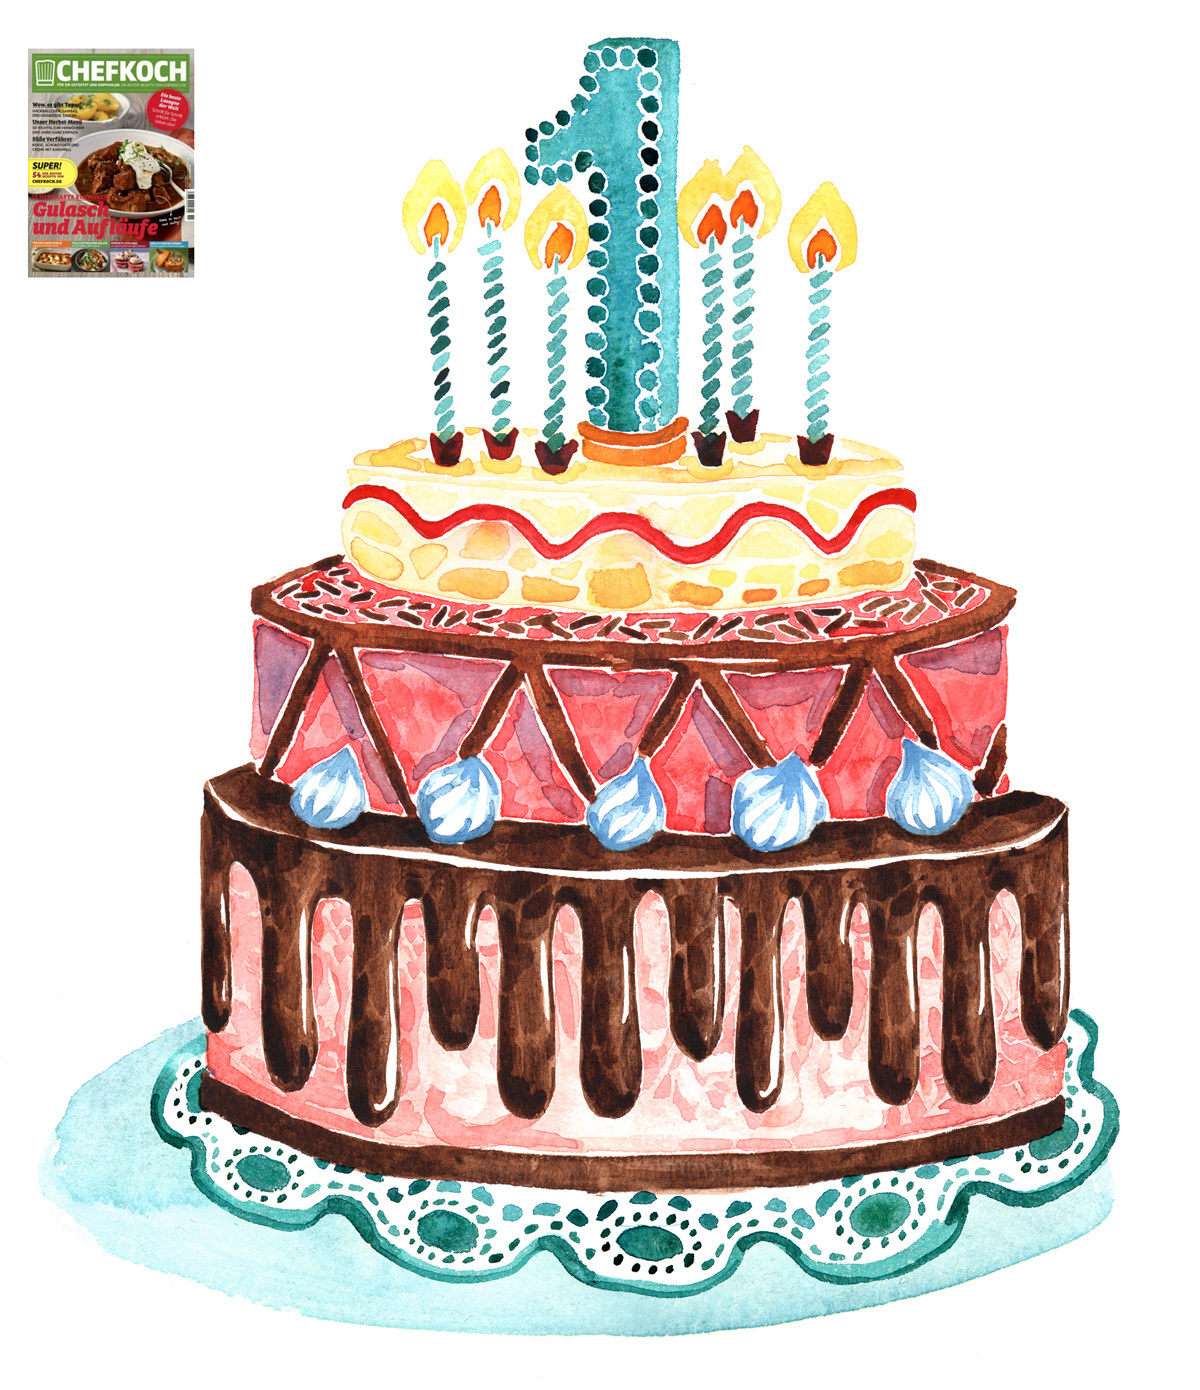 Happy Birthday, Chefkoch Magazine! For its first anniversary, I illustrated a Birthday Cake and balloons!